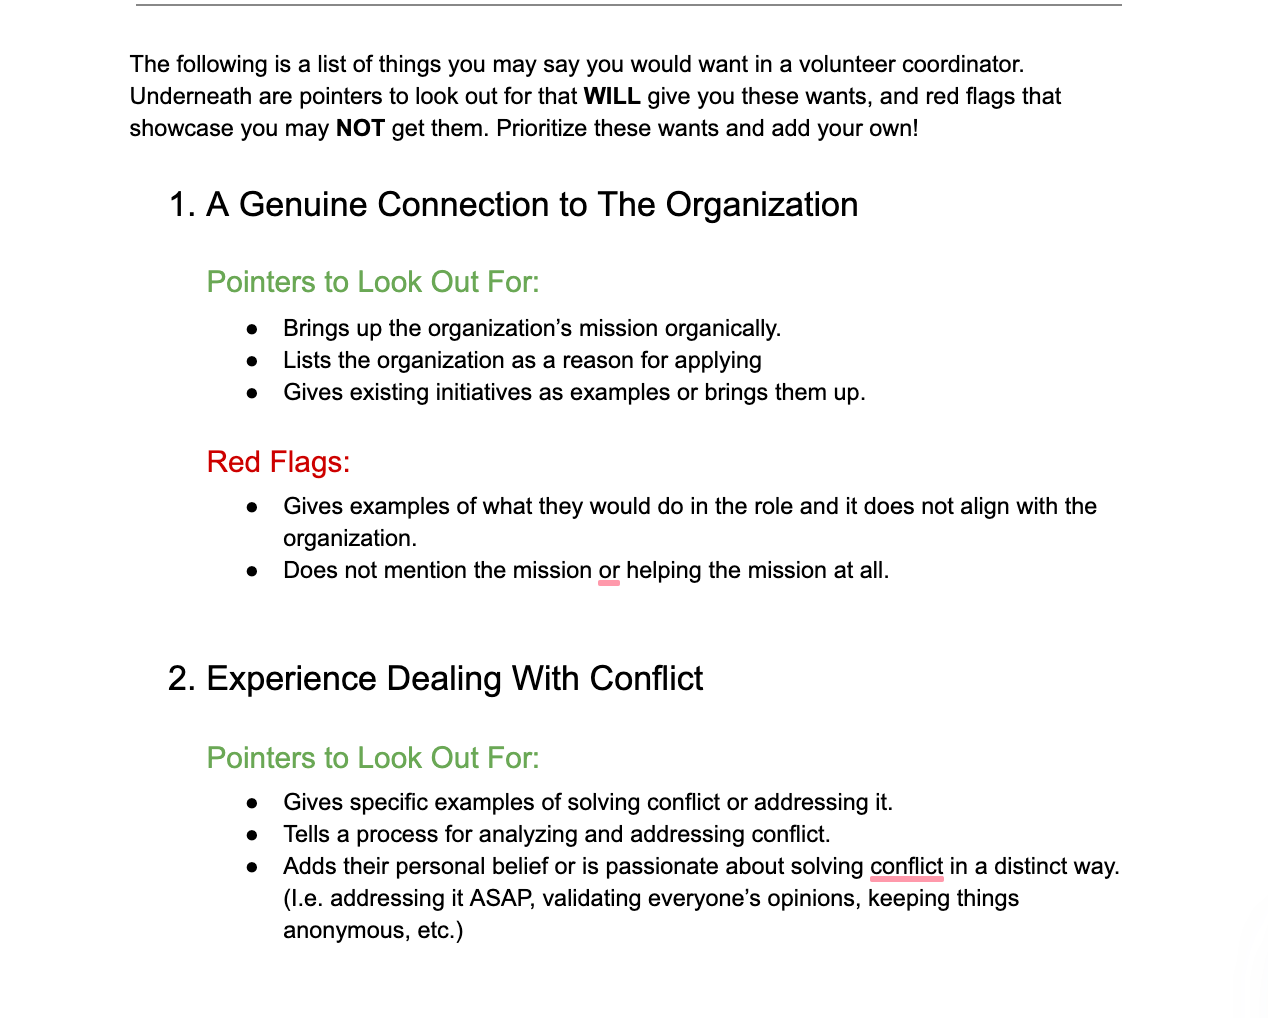 The following is a list of things you may say you would want in a volunteer coordinator. Underneath are pointers to look out for that WILL give you these wants, and red flags that showcase you may NOT get them. Prioritize these wants and add your own!  A Genuine Connection to The Organization Pointers to Look Out For:  Brings up the organization's mission organically.  Lists the organization as a reason for applying  Gives existing initiatives as examples or brings them up.  Red Flags: Gives examples of what they would do in the role and it does not align with the organization.  Does not mention the mission or helping the mission at all.  Experience Dealing With Conflict Pointers to Look Out For:  Gives specific examples of solving conflict or addressing it.  Tells a process for analyzing and addressing conflict. Adds their personal belief or is passionate about solving conflict in a distinct way. (I.e. addressing it ASAP, validating everyone's opinions, keeping things anonymous, etc.)